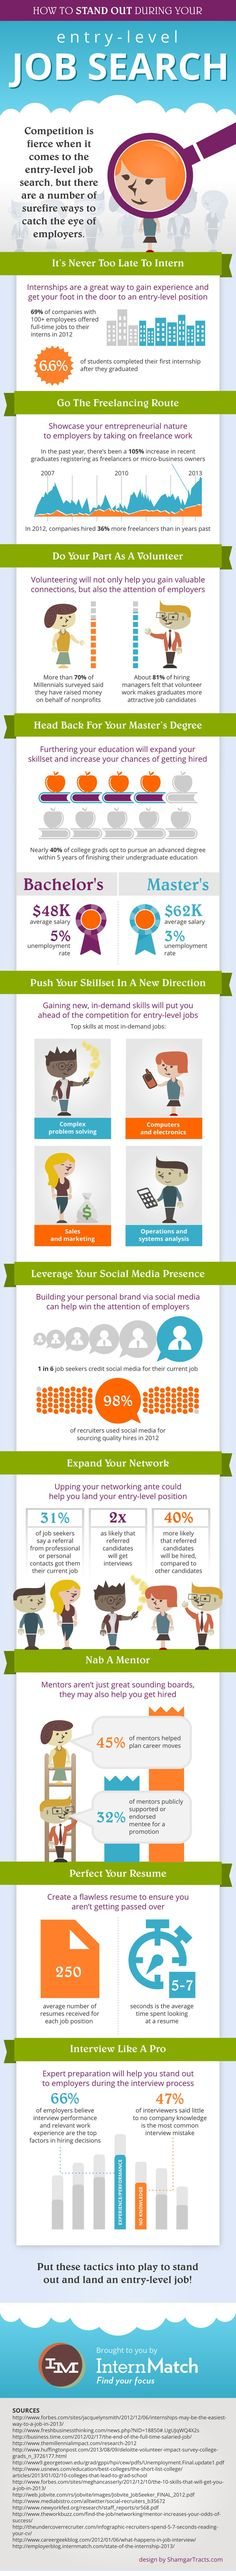 InfoGraphic: How to Stand Out During Your Entry-Level Job Search   Mashable